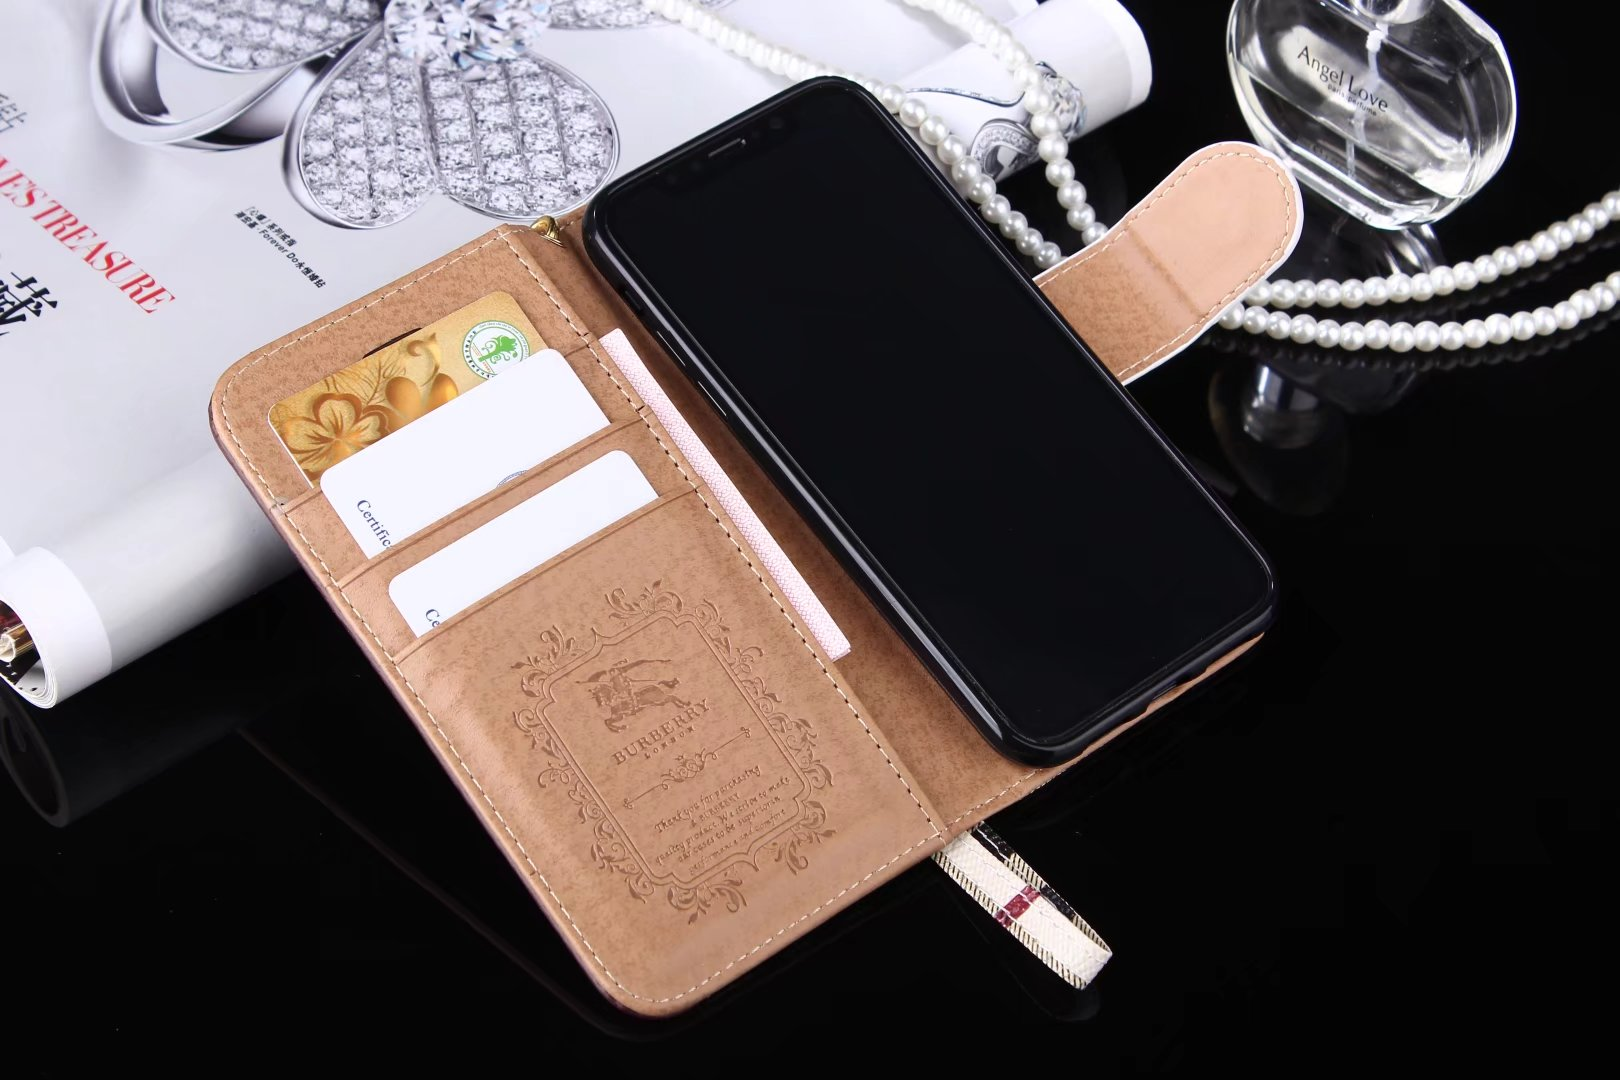 custom cases for iphone X best iphone X case brands Burberry iPhone X case mophie juice pack plus warranty cool phone cases for iphone 6 how to use mophie iphone 6 apple iphone case 6 case iphone 6 iphone 8 design